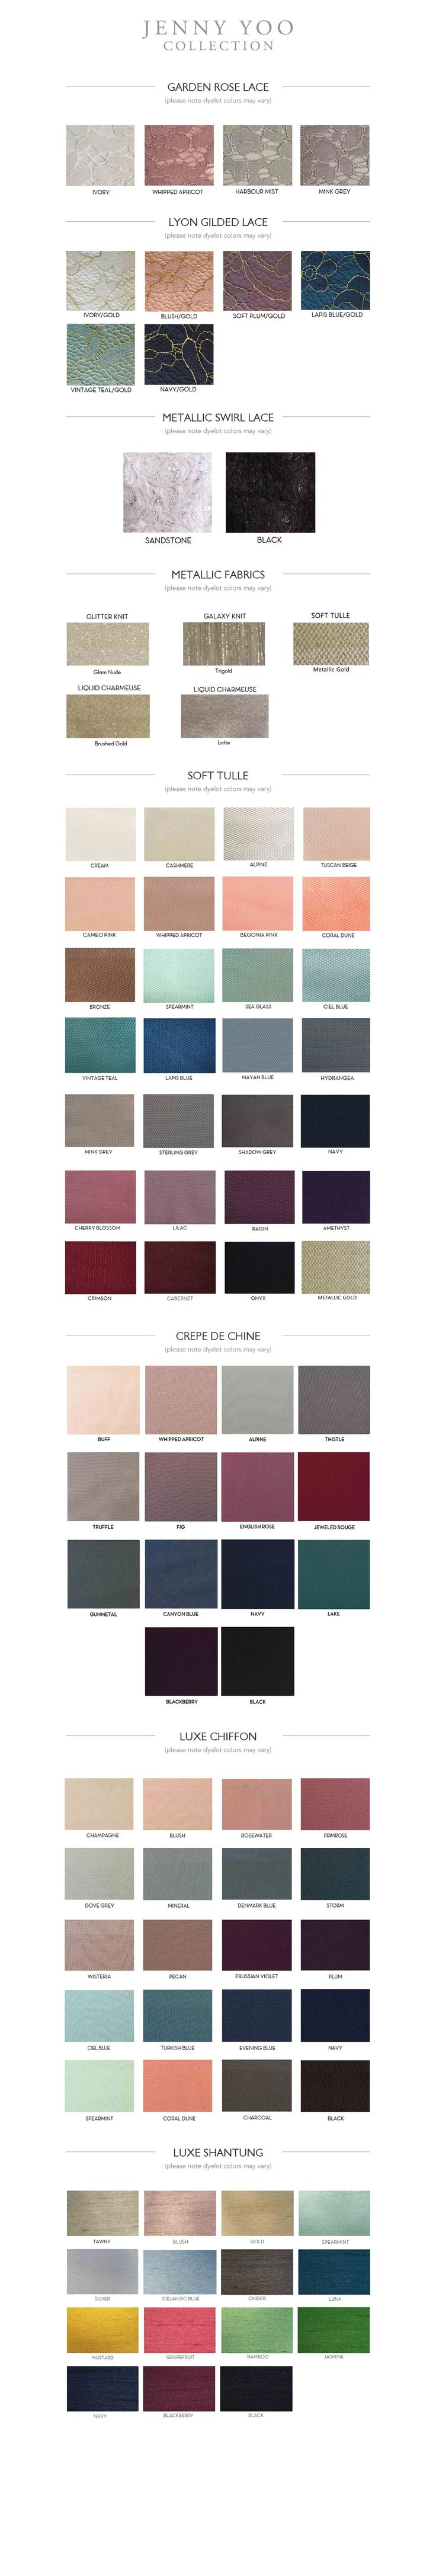 Best 25 begonia bridesmaid dress colours ideas on pinterest ophelia capelet 2016 separates 2016 collection collection being a bridesmaidbridesmaid ideaswedding bridesmaidsbridesmaid dressescolour ombrellifo Image collections